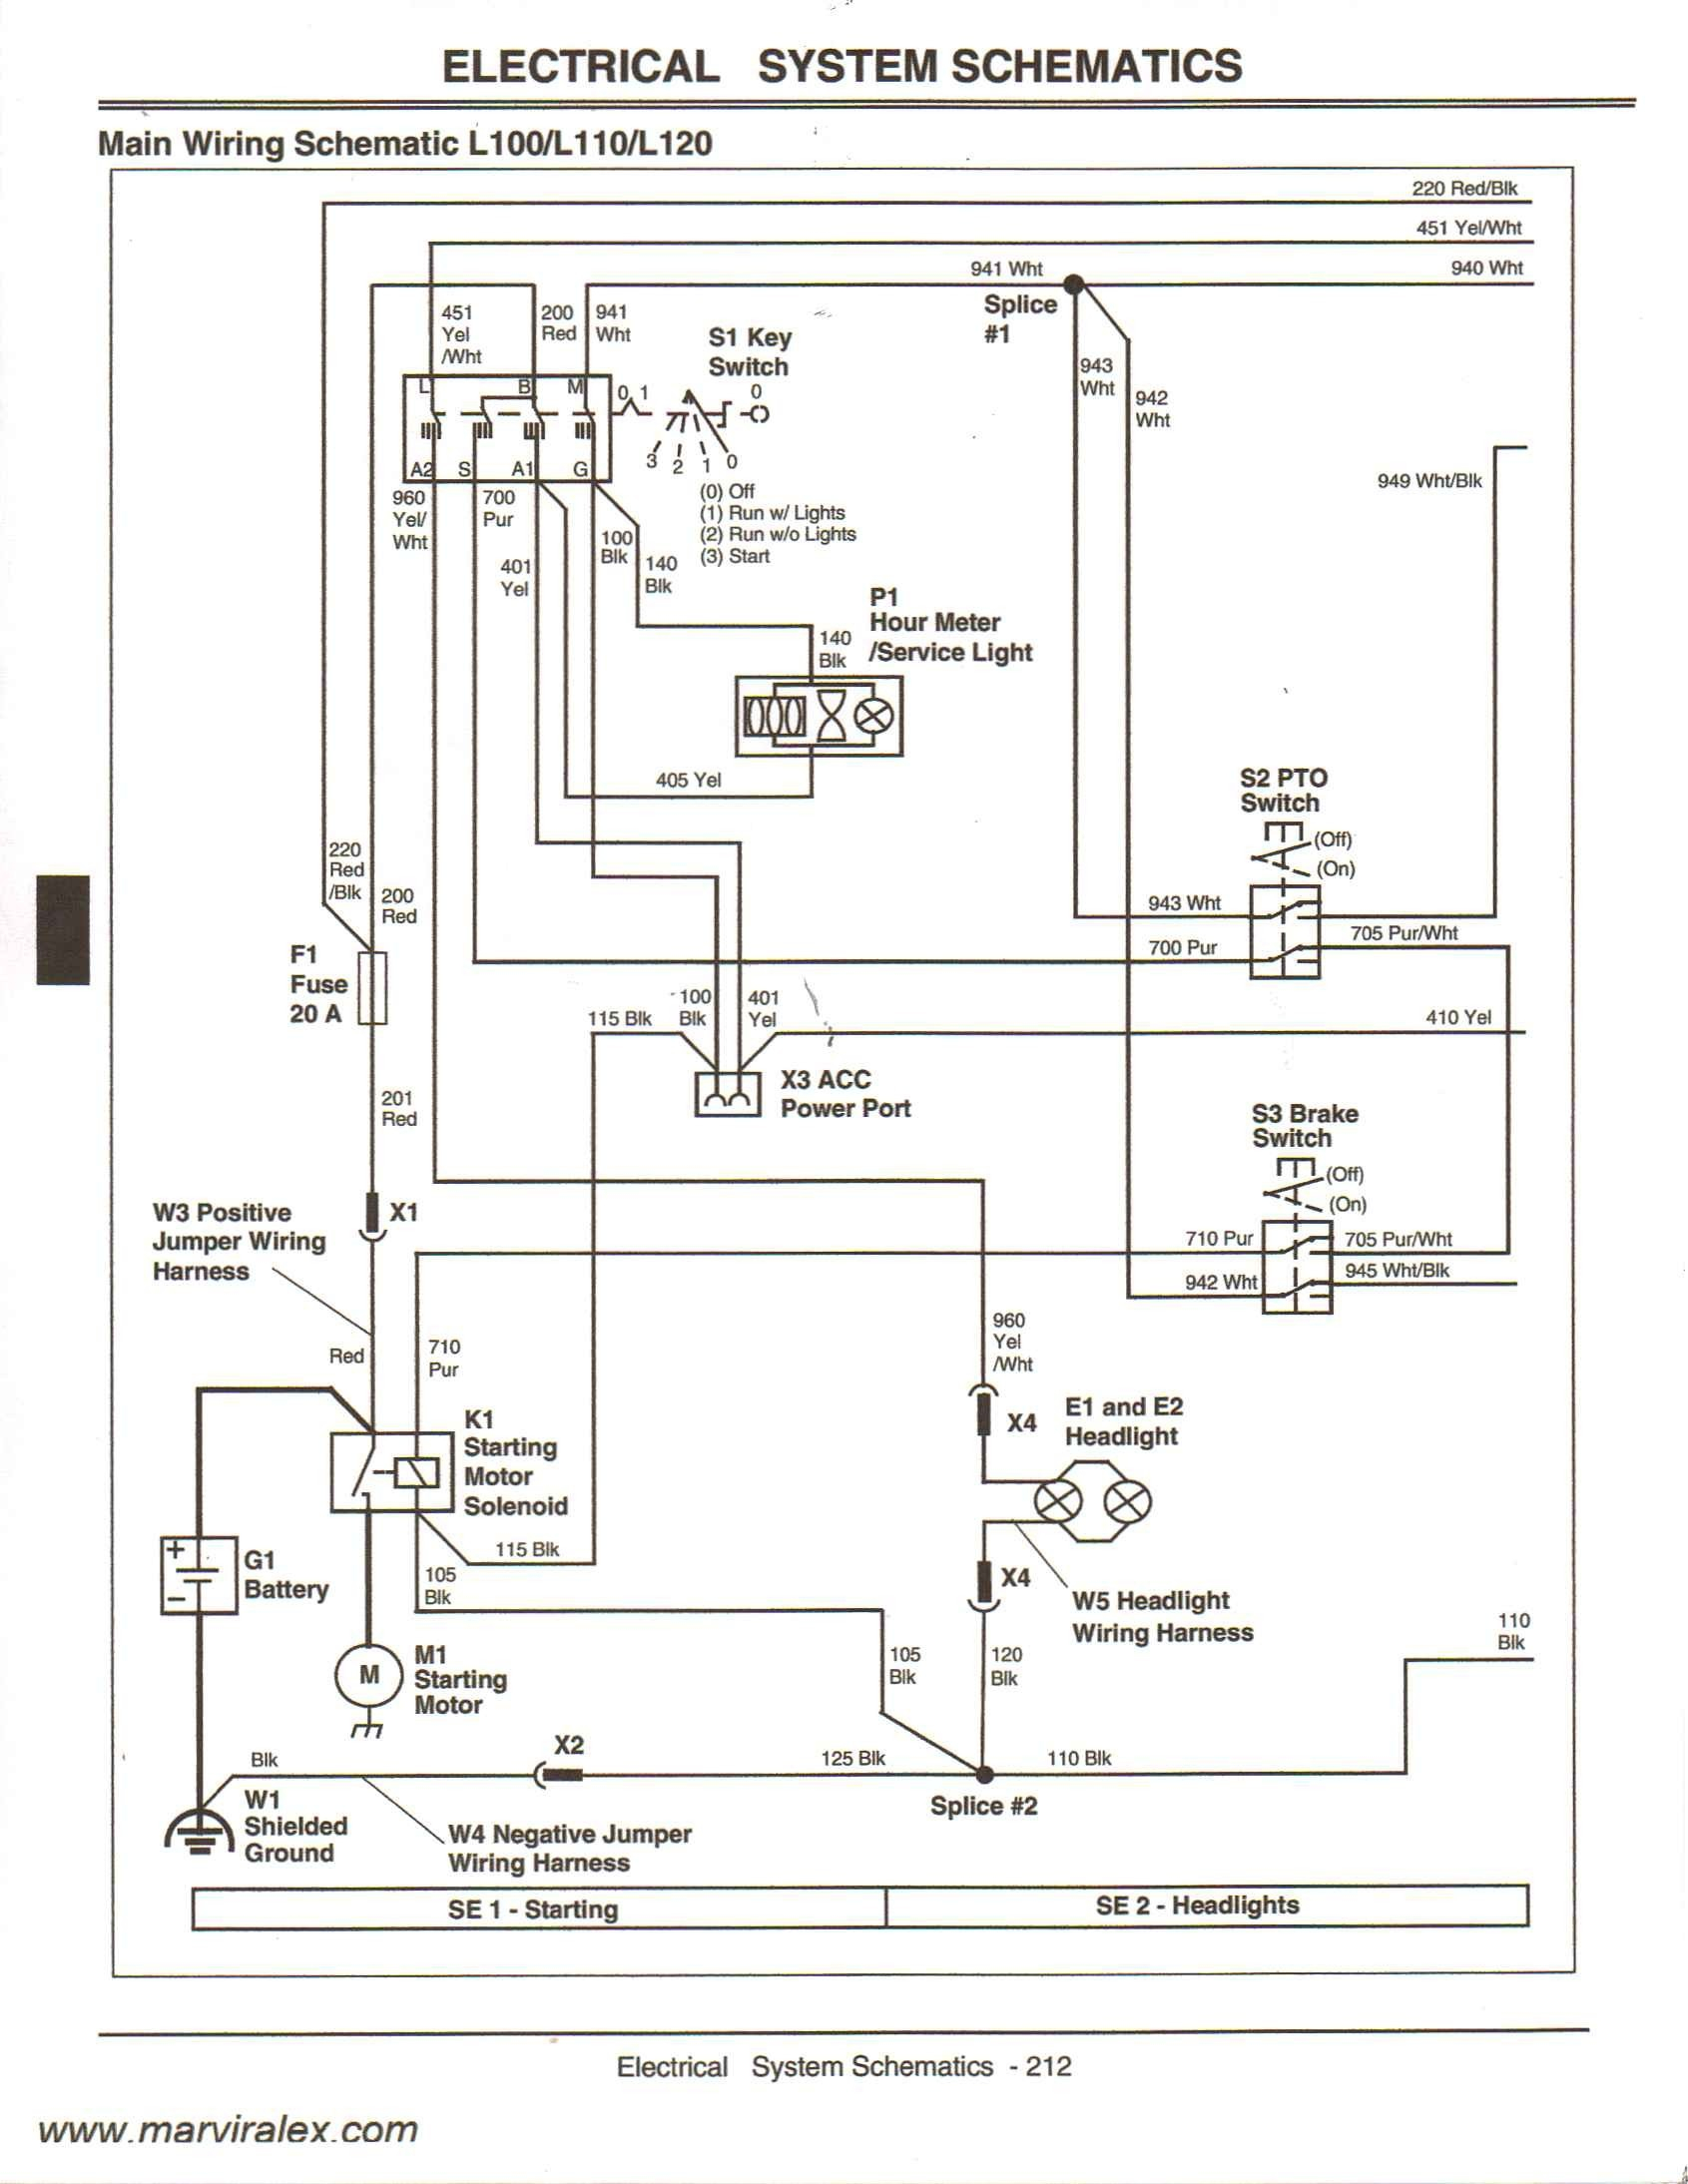 John Deere 316 Wiring Harness | Wiring Diagram on